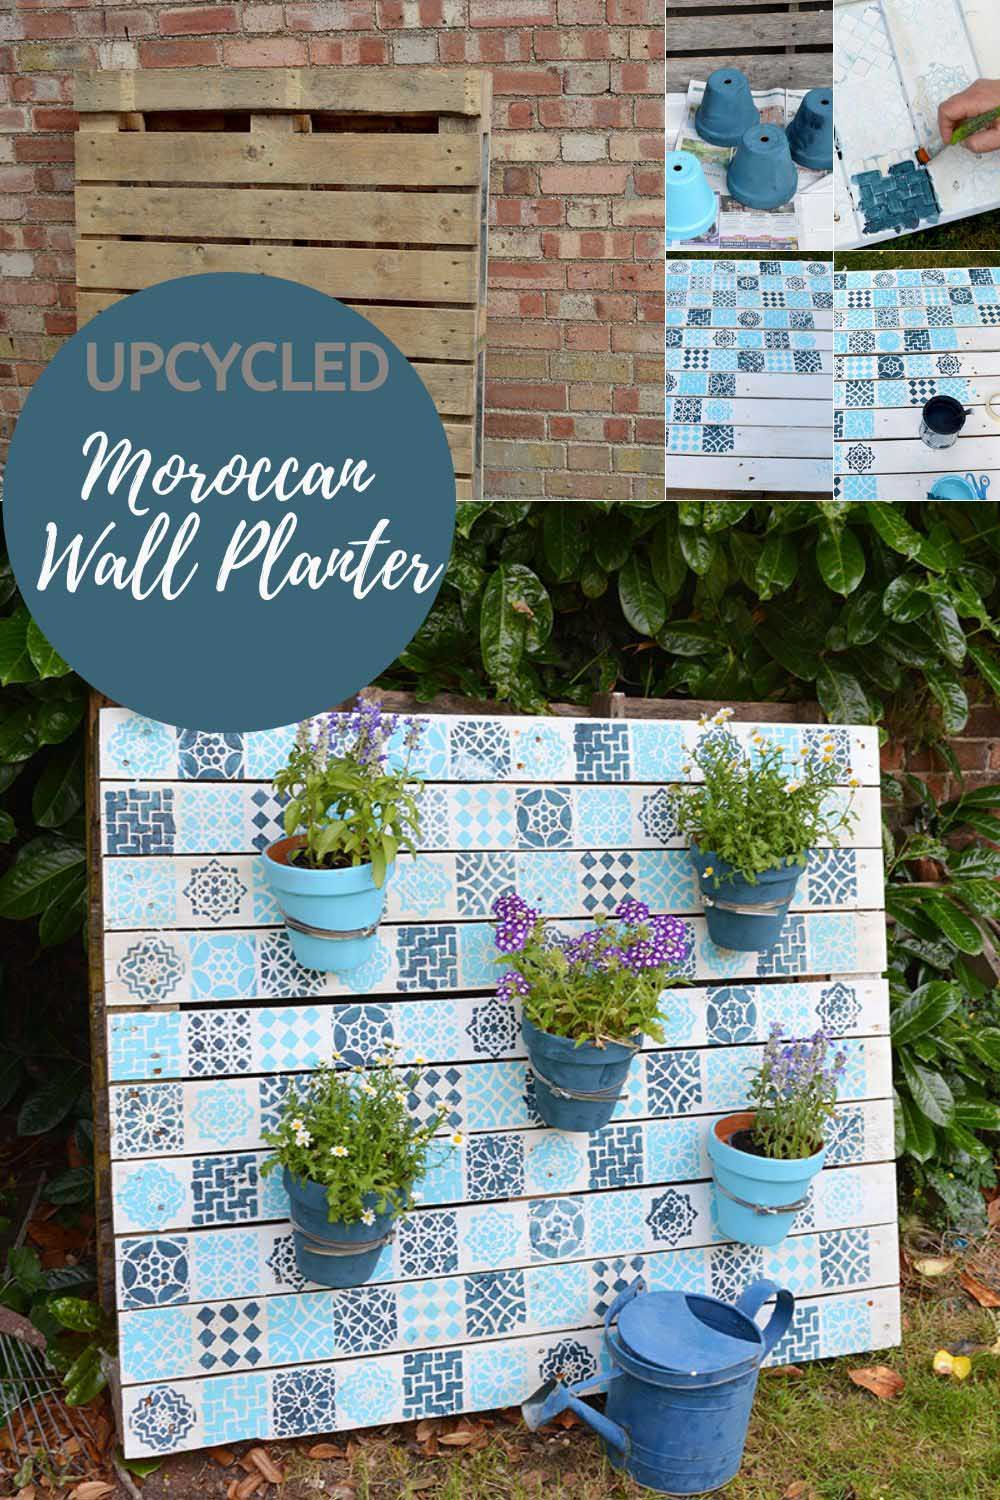 Upcycled Moroccan Pallet Planter